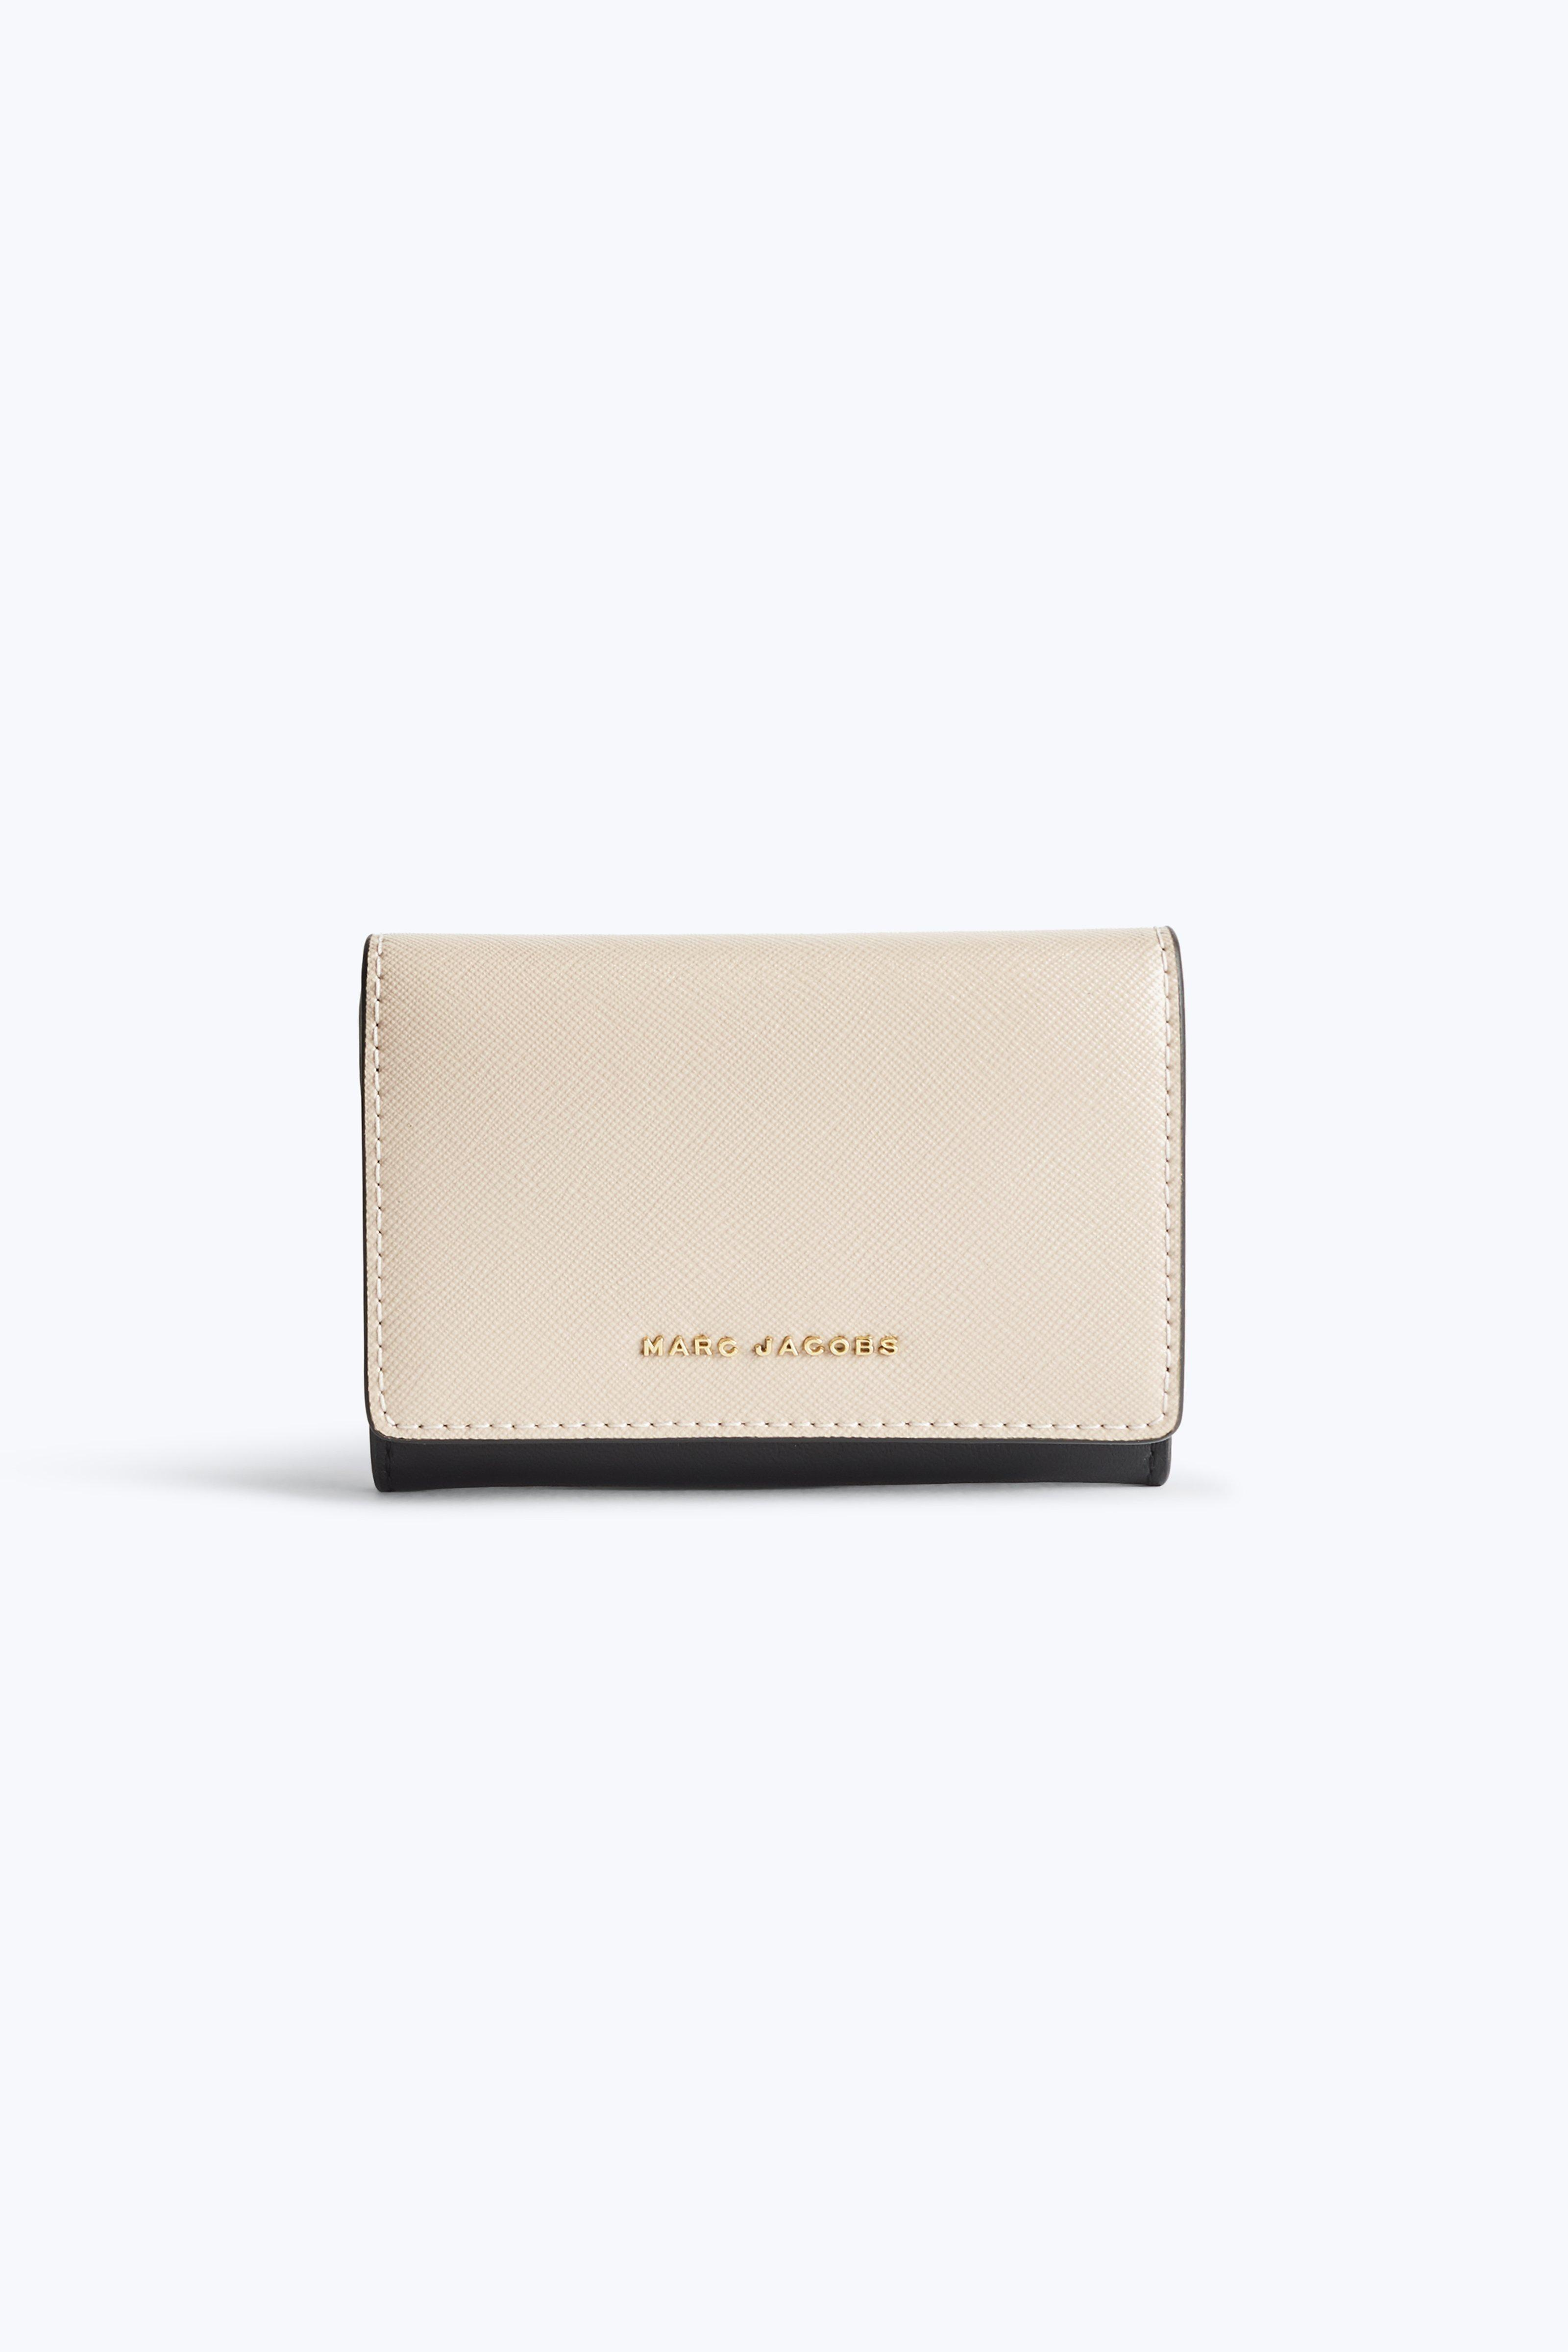 Marc Jacobs Saffiano Colorblocked Multi Wallet In Pale Pink Multi